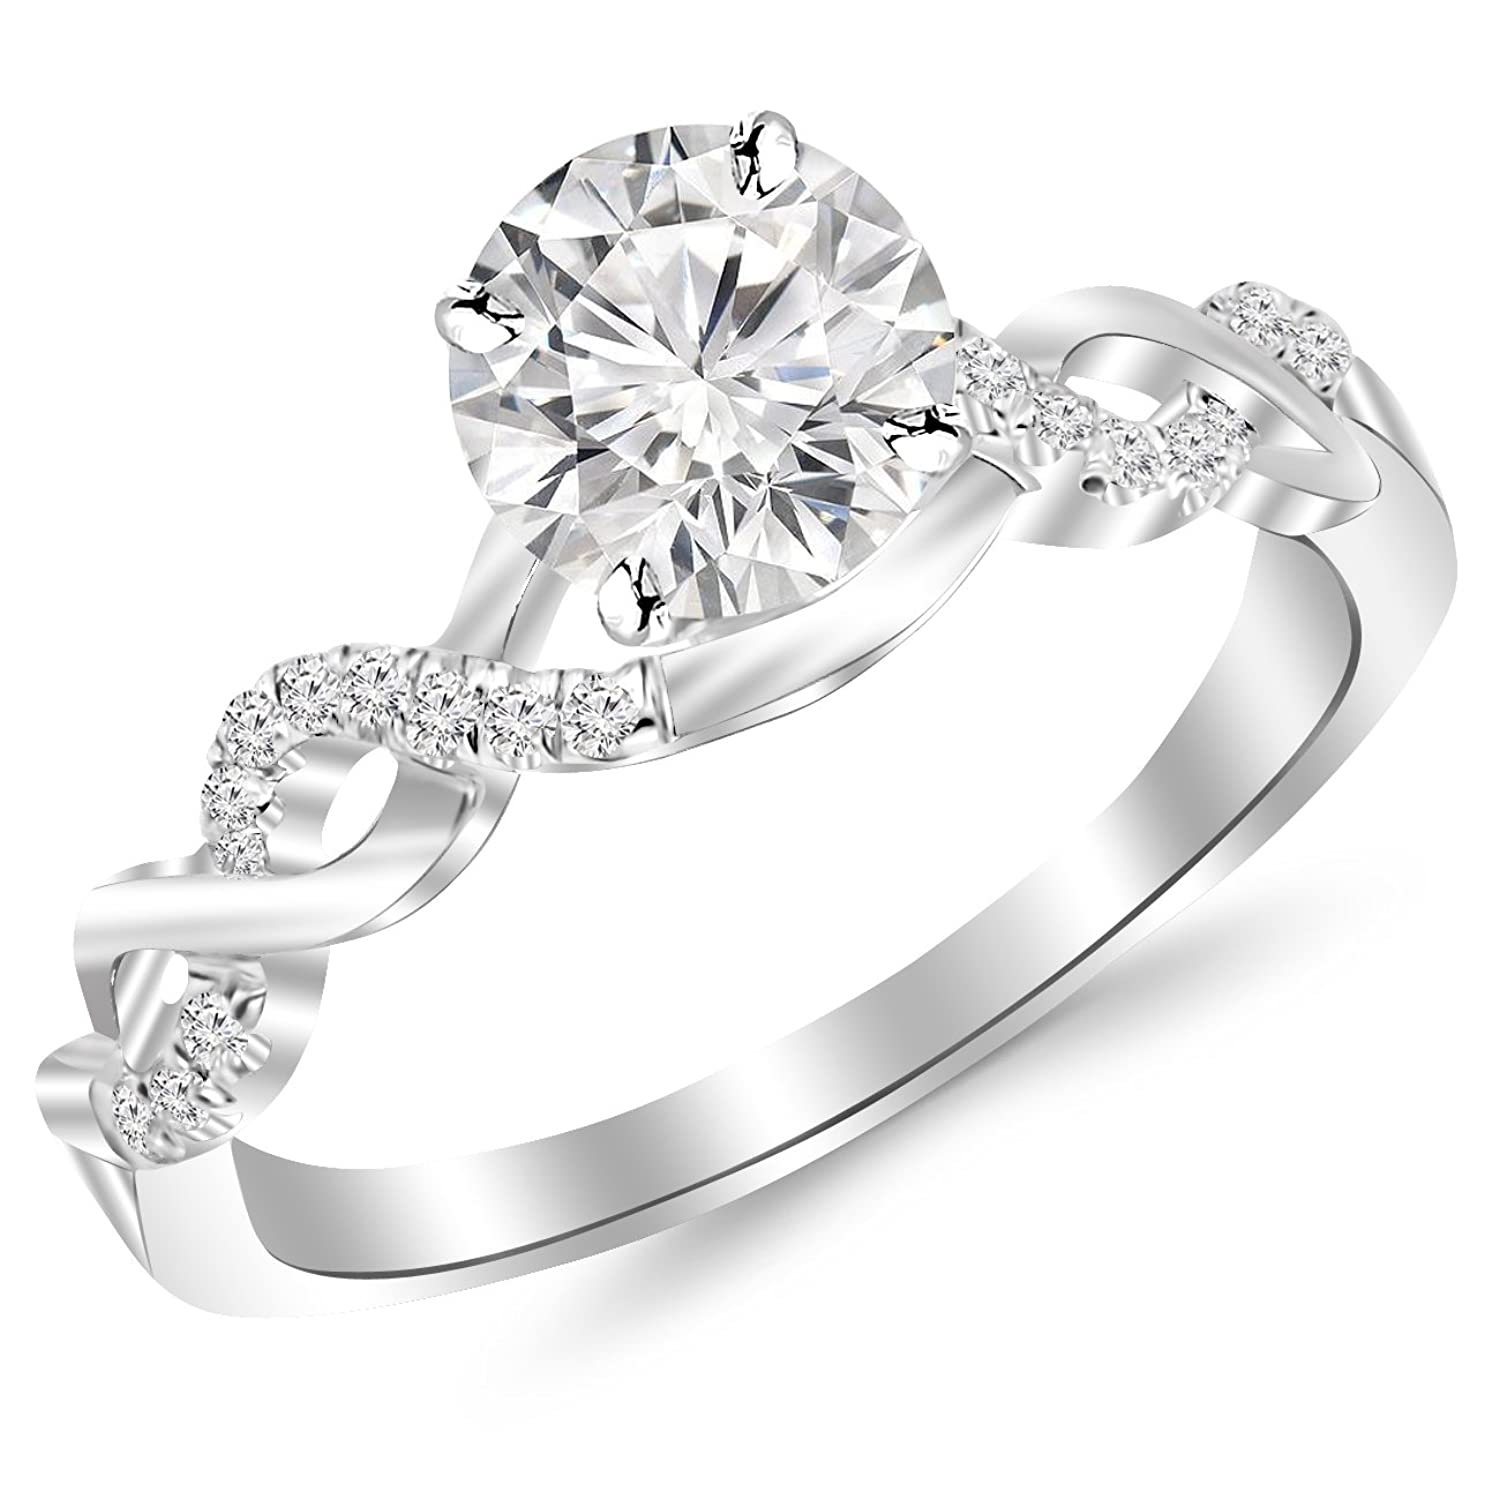 infinity wedding rings australia jared wedding rings Infinity wedding rings australia